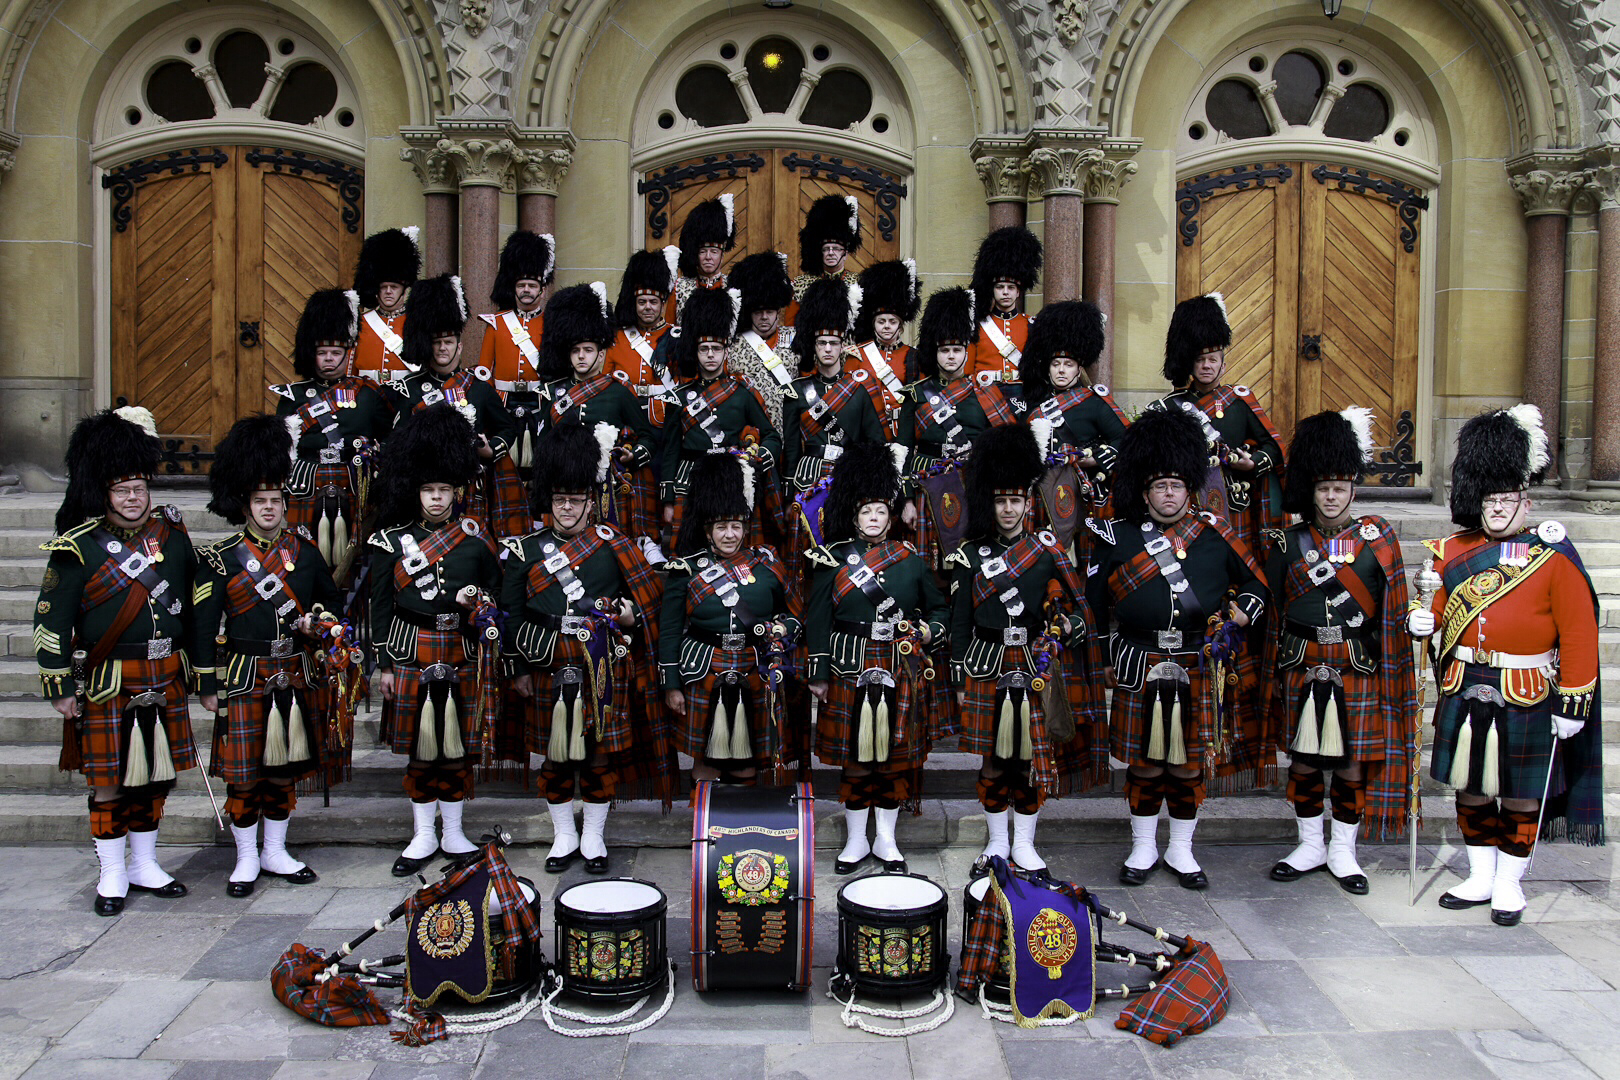 <b>4th Canadian Division Combined Band of the Argyll and Sutherland Highlanders, 48th Highlanders, and Royal Highland Fusiliers</b><br>